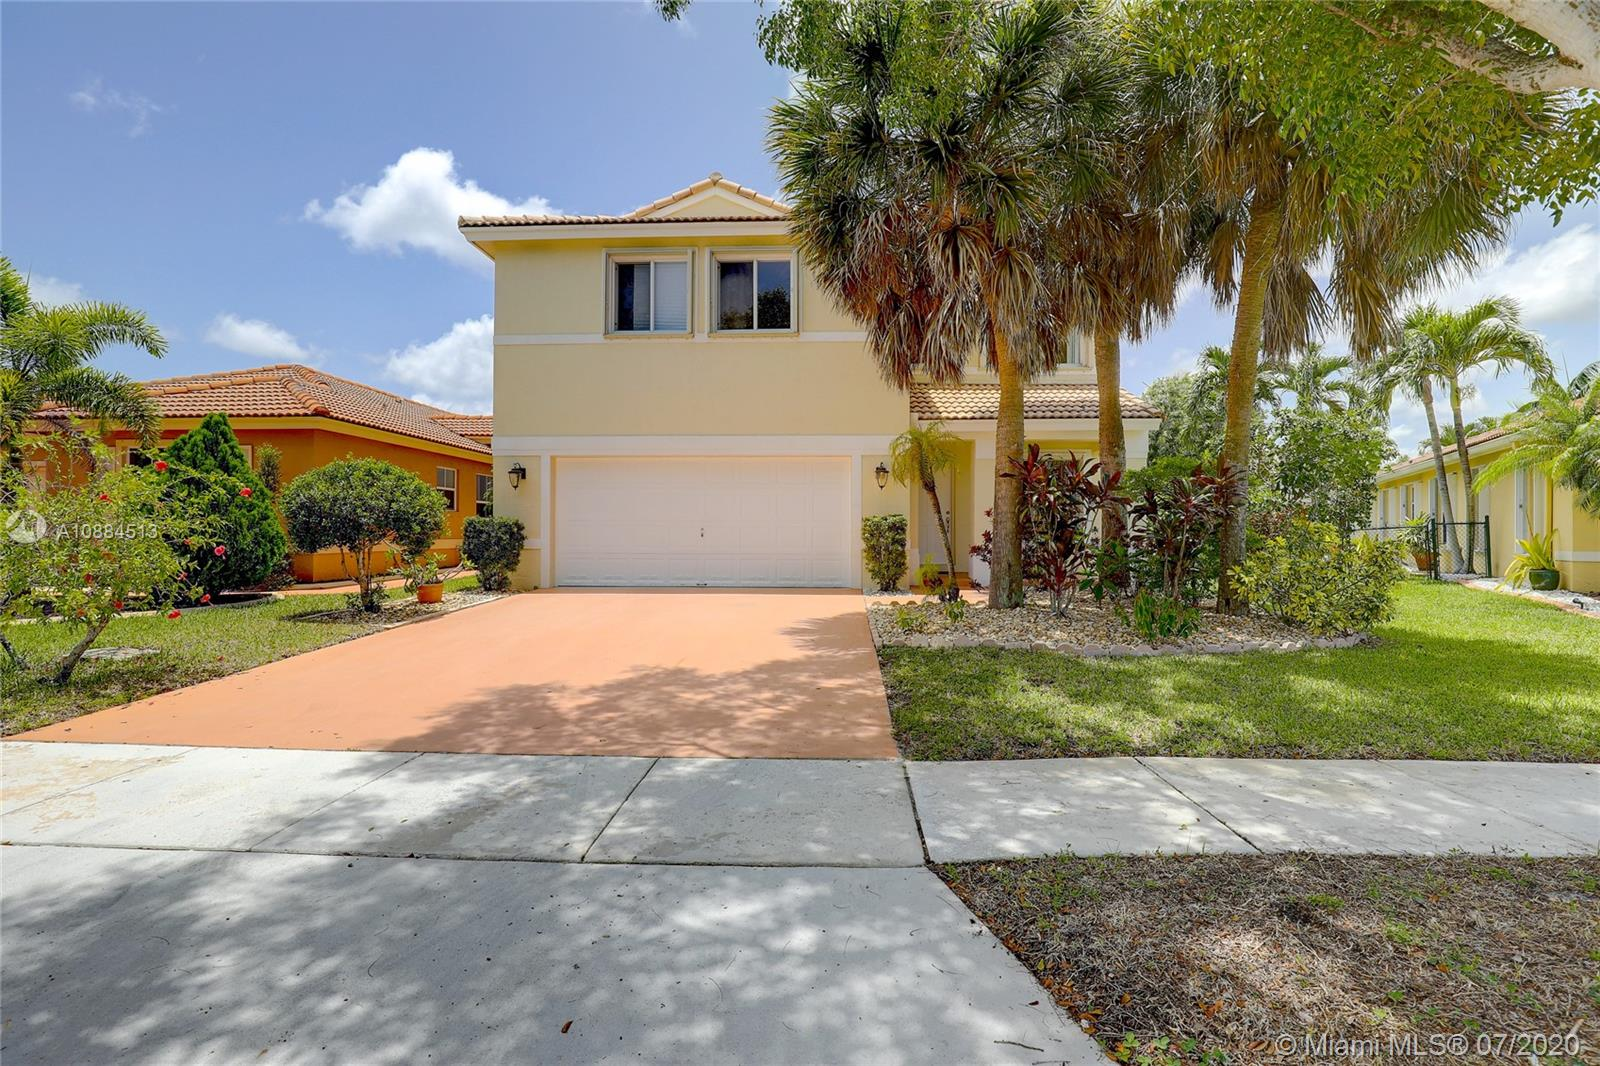 VERY BEAUTIFUL, VERY SPACIOUS, VERY WELL MAINTAINED AND VERY WELL PRICED SINGLE FAMILY HOME FEATURING 4 BEDROOMS AND 3 FULL BATHS LOCATED IN PEACEFUL WEST PEMBROKE PINES. THIS HOME FEATURES A NEWER KITCHEN, ENGINEERED WOOD ON THE SECOND FLOOR, NEW WATER PURIFICATION SYSTEM AND NEW AC IN 2019. SOARING CEILINGS IN THE LIVING AREA AND TONS OF NATURAL LIGHT THROUGHOUT COMPLIMENT THE MASSIVE MASTER SUITE. ONE SPARE BEDROOM AND FULL BATH ON THE GROUND FLOOR AND SPACIOUS LOFT OVERLOOKING THE LIVING ROOM ON THE TOP FLOOR.